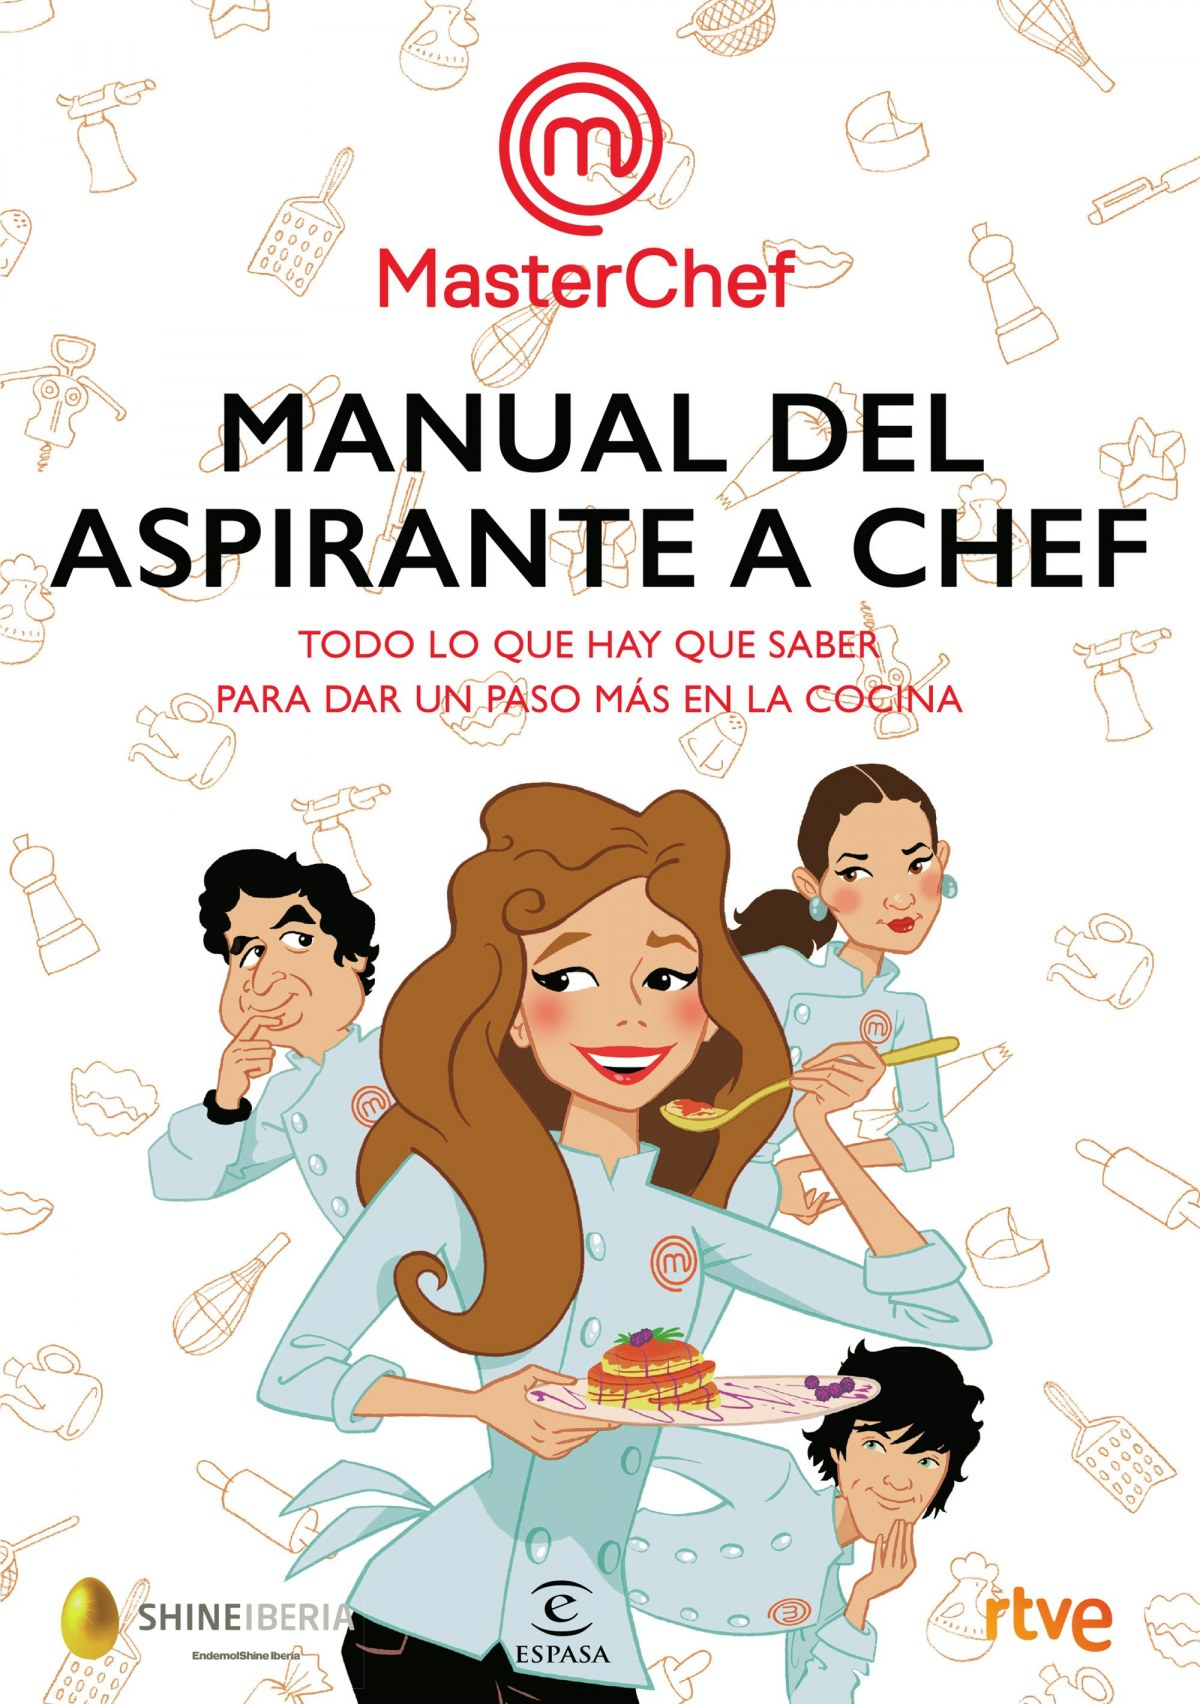 MANUAL DEL ASPIRANTE A CHEF 9788467052008